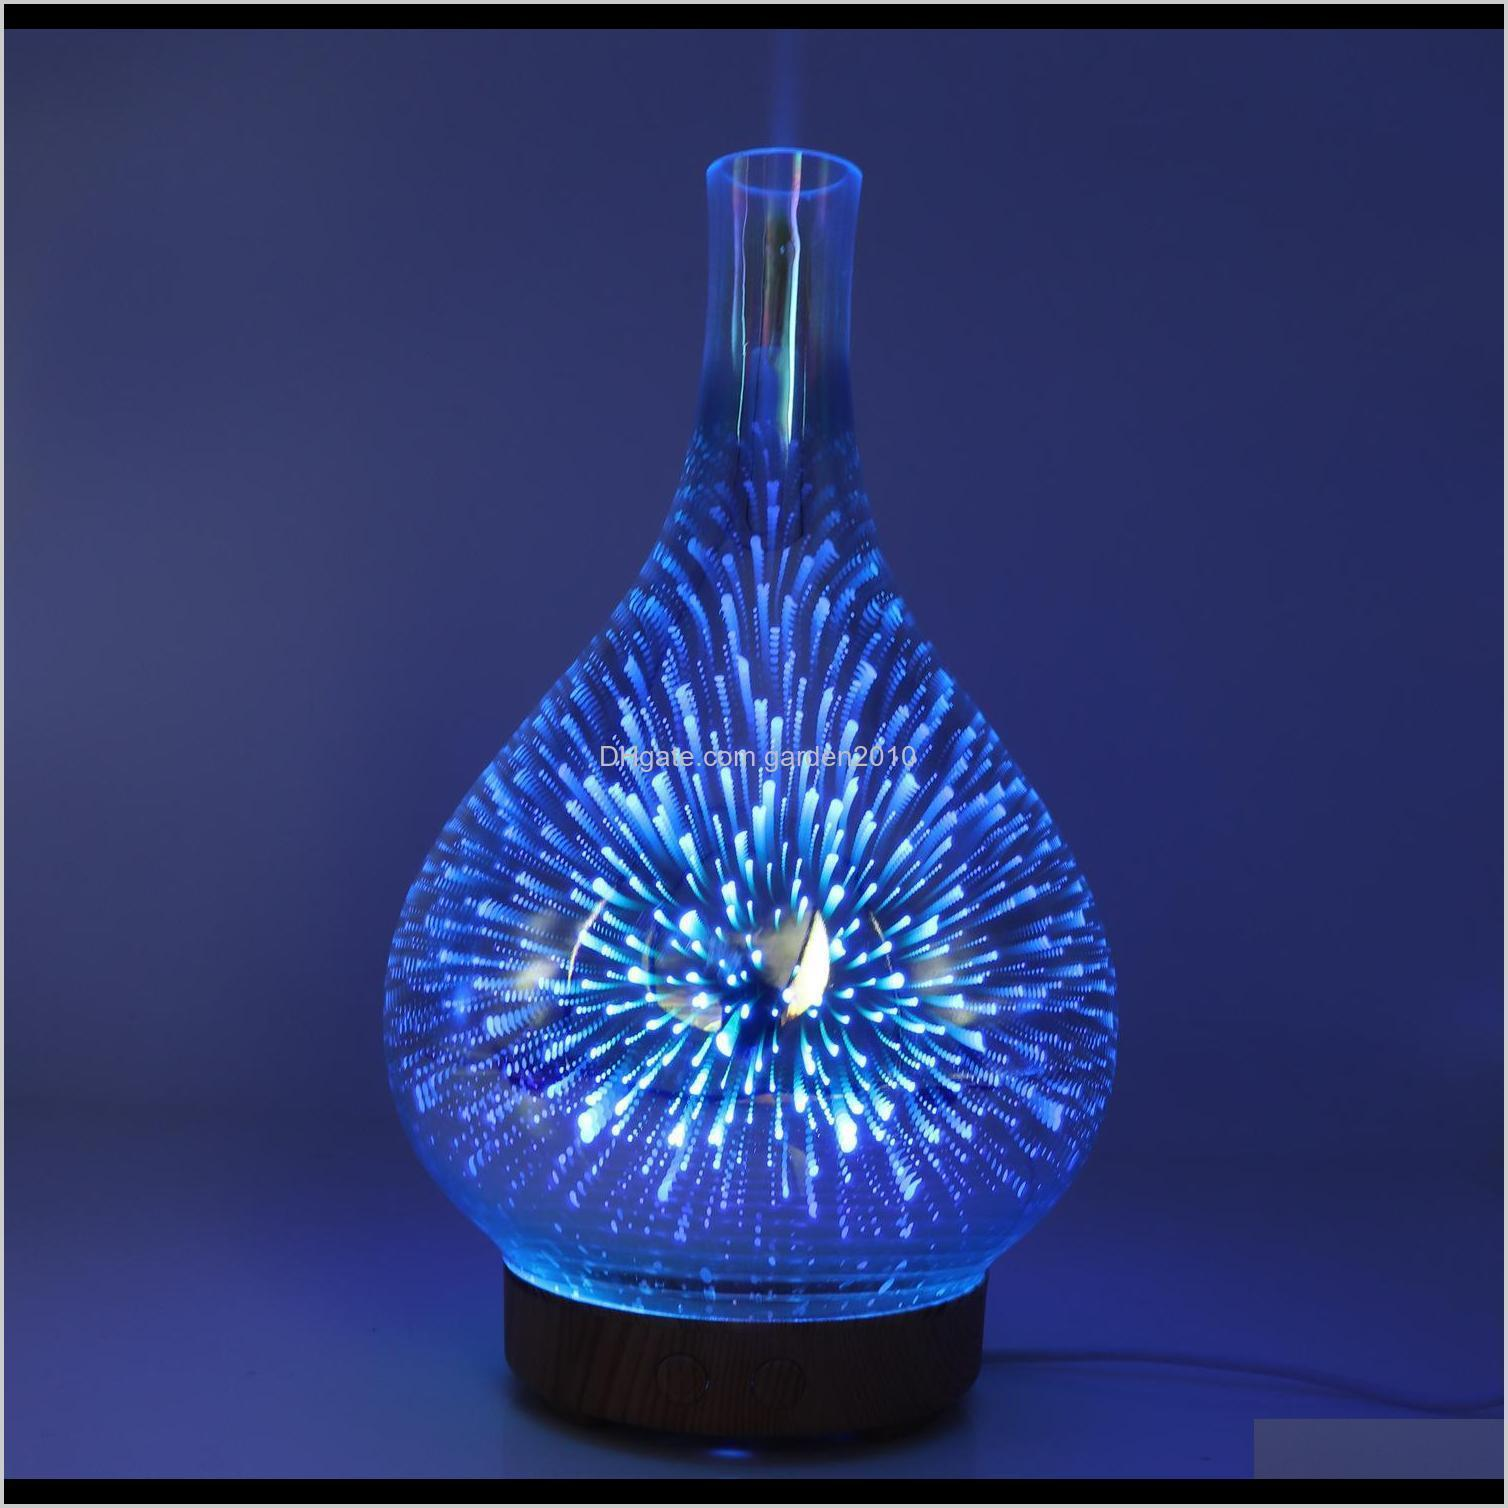 fragrance lamps 3d fireworks glass humidifier led colorful night light aromatherapy machine essential oil diffuser by sea ship gga3654